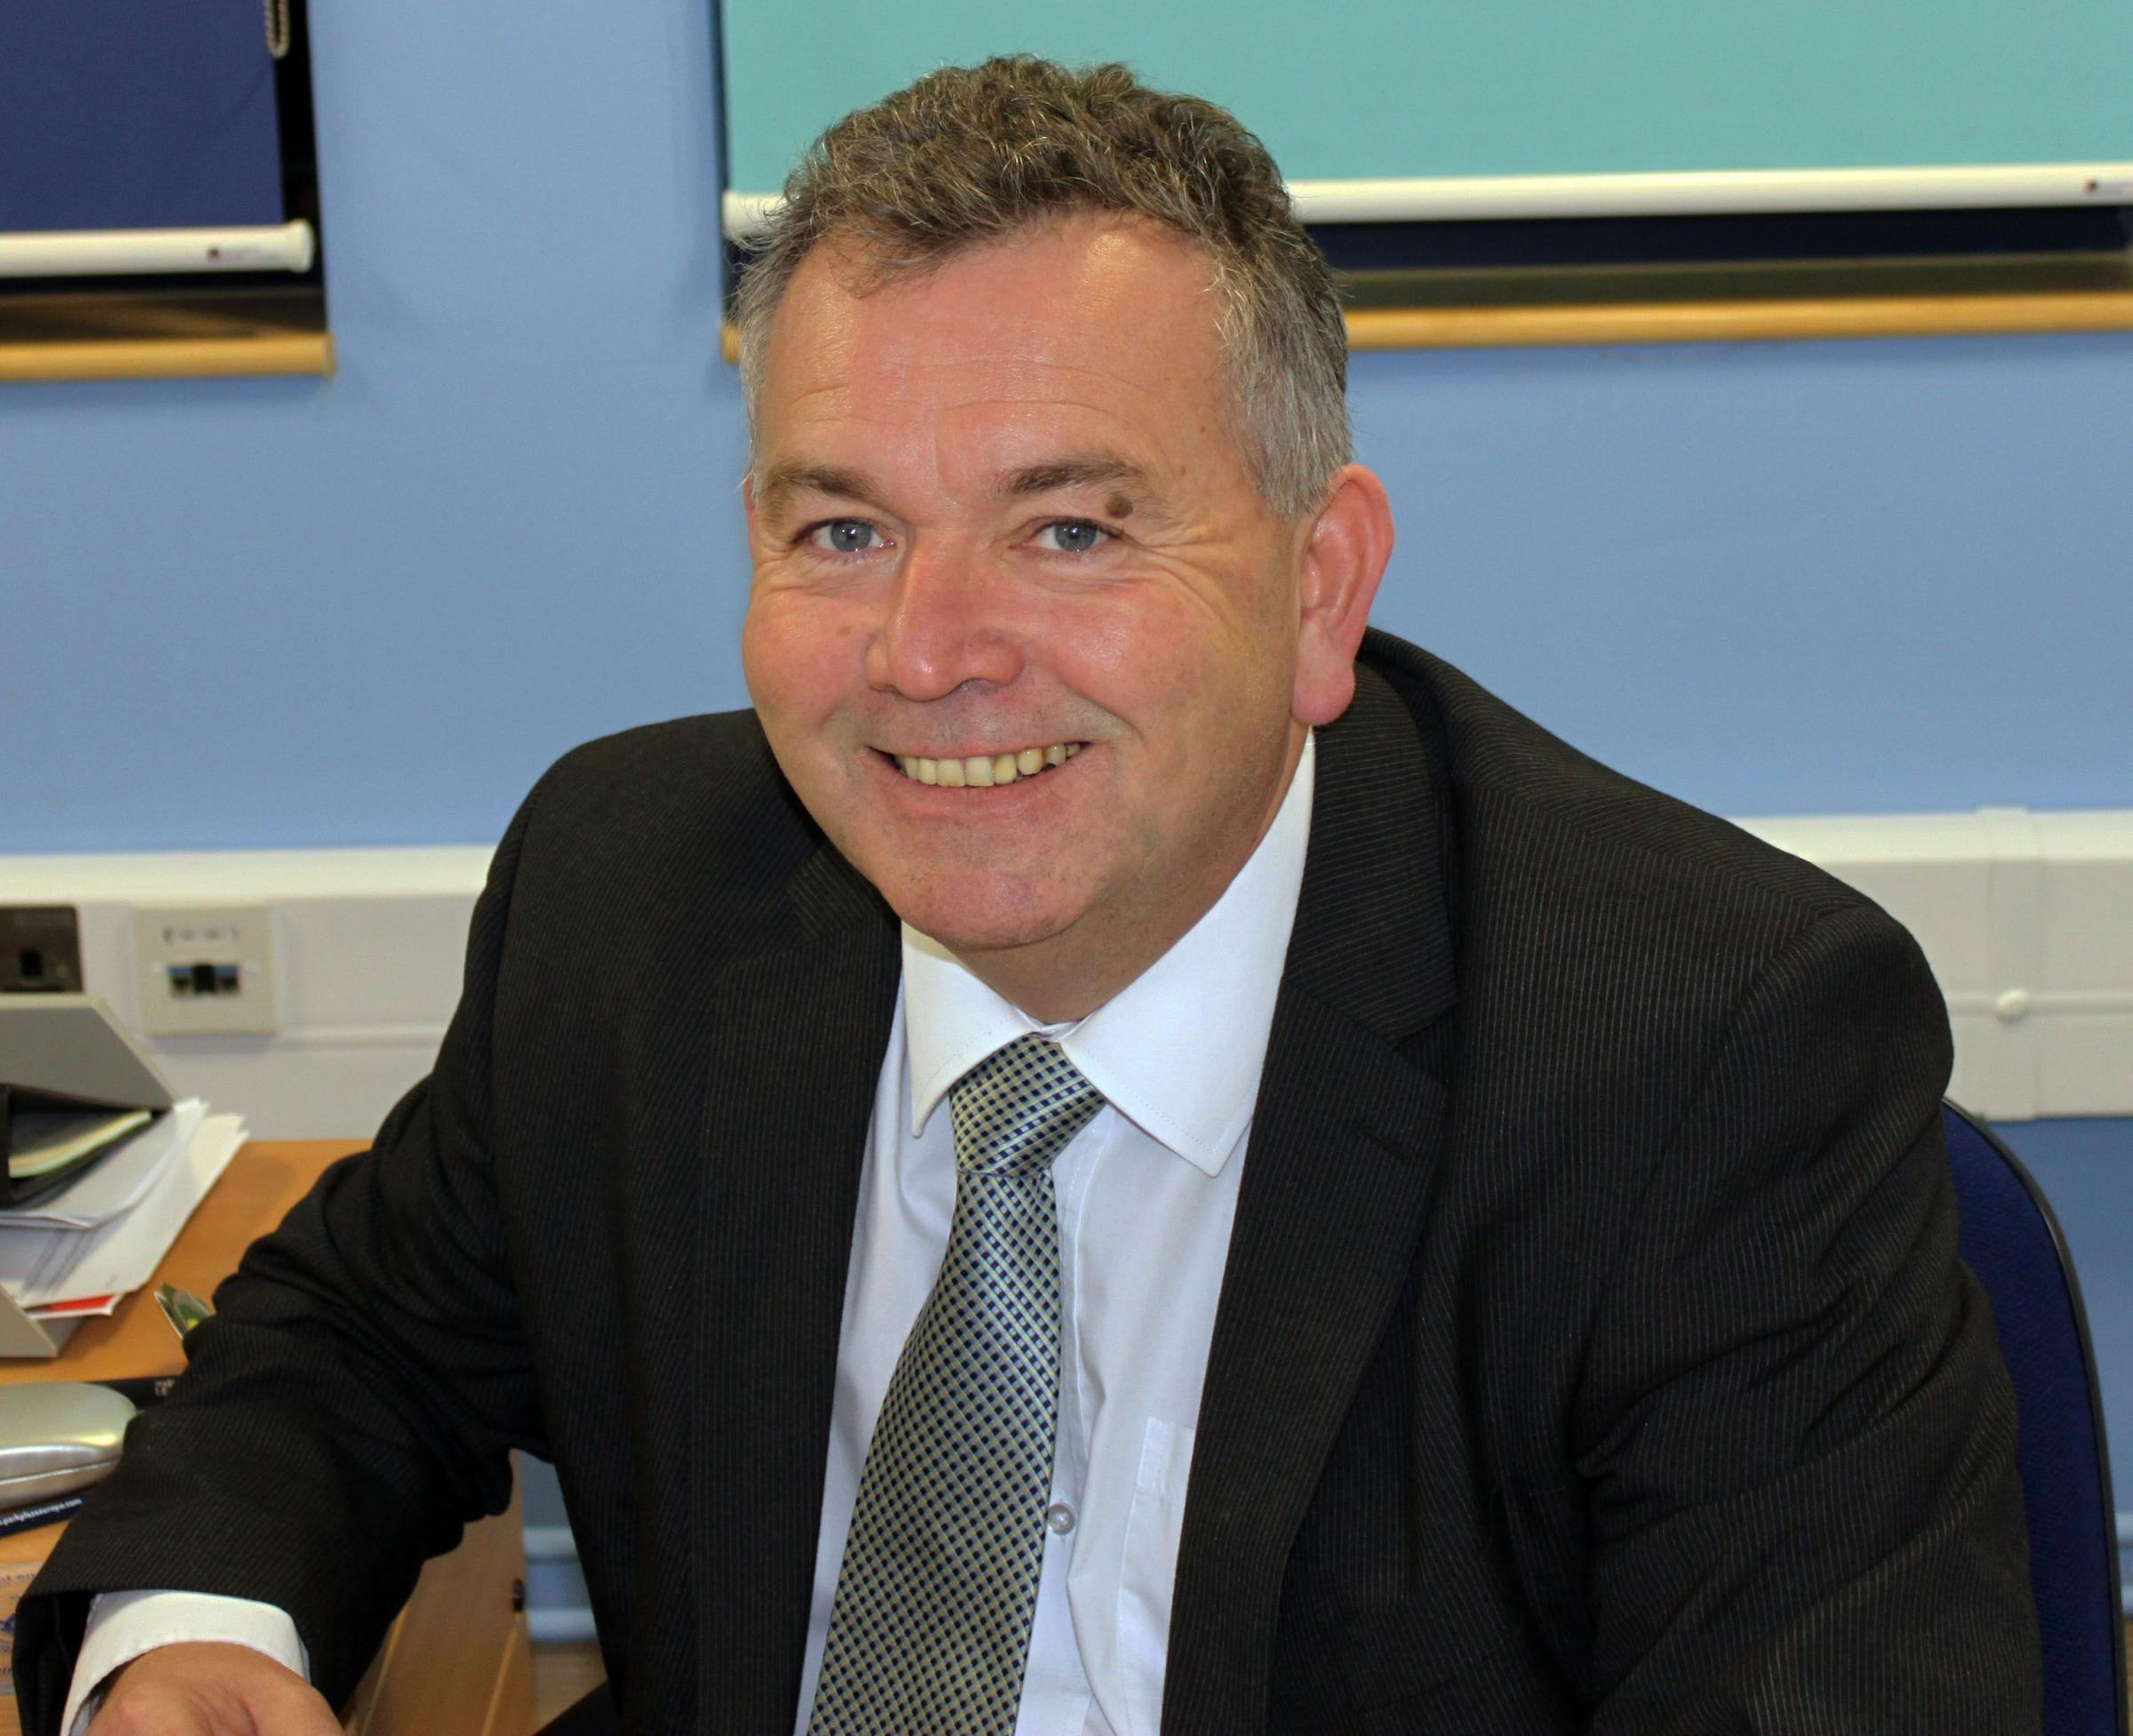 Dorset PCC awards new contract for victim support services